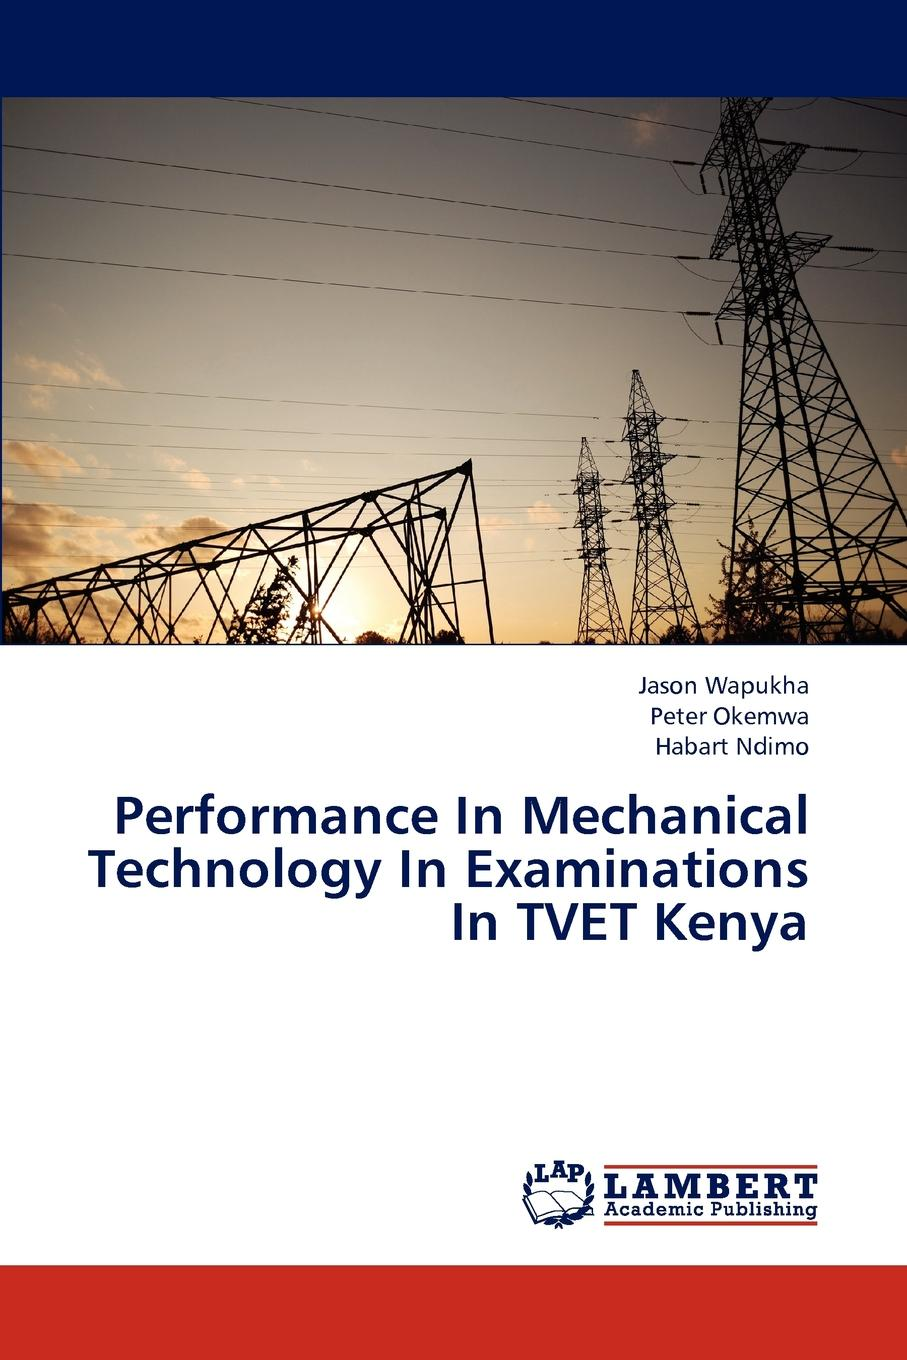 Wapukha Jason, Okemwa Peter, Ndimo Habart Performance In Mechanical Technology In Examinations In TVET Kenya недорго, оригинальная цена